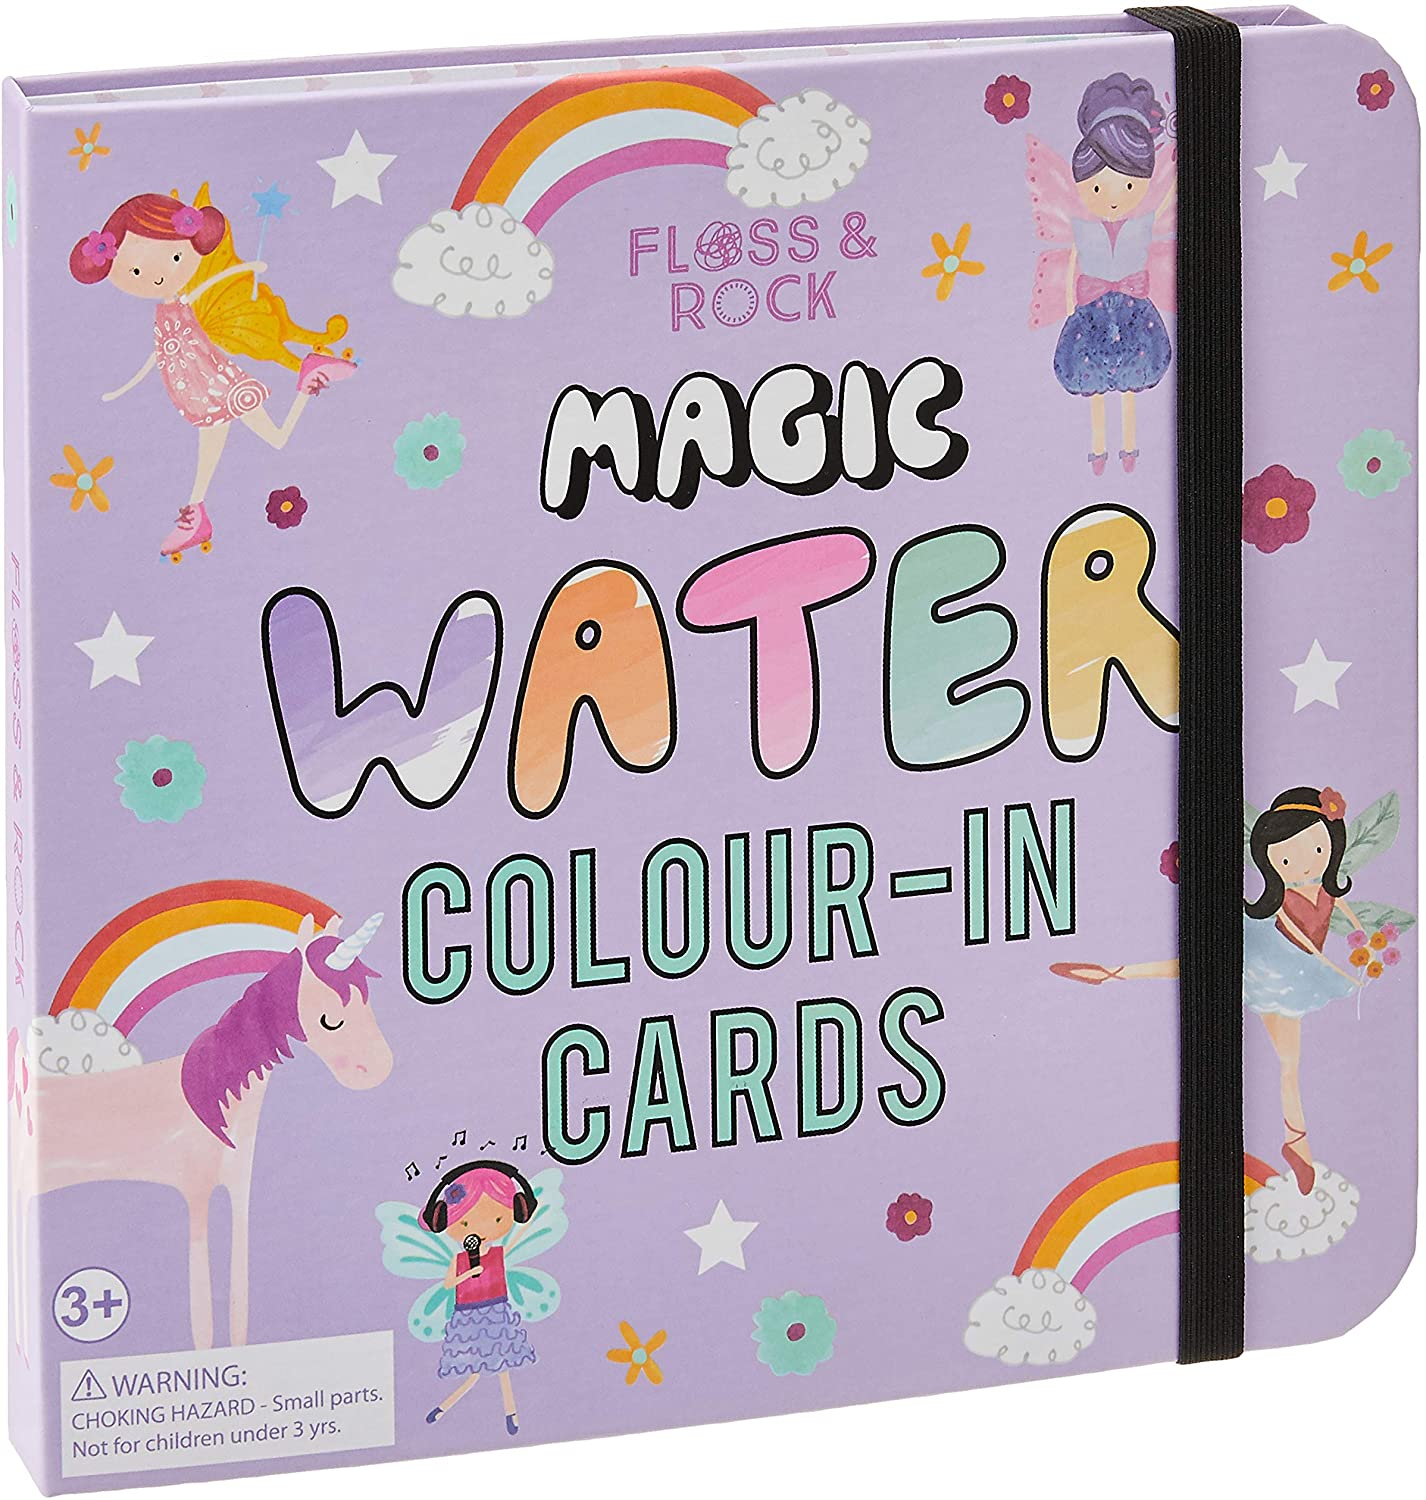 Fairy Unicorn Water Colour-In Cards by Floss & Rock